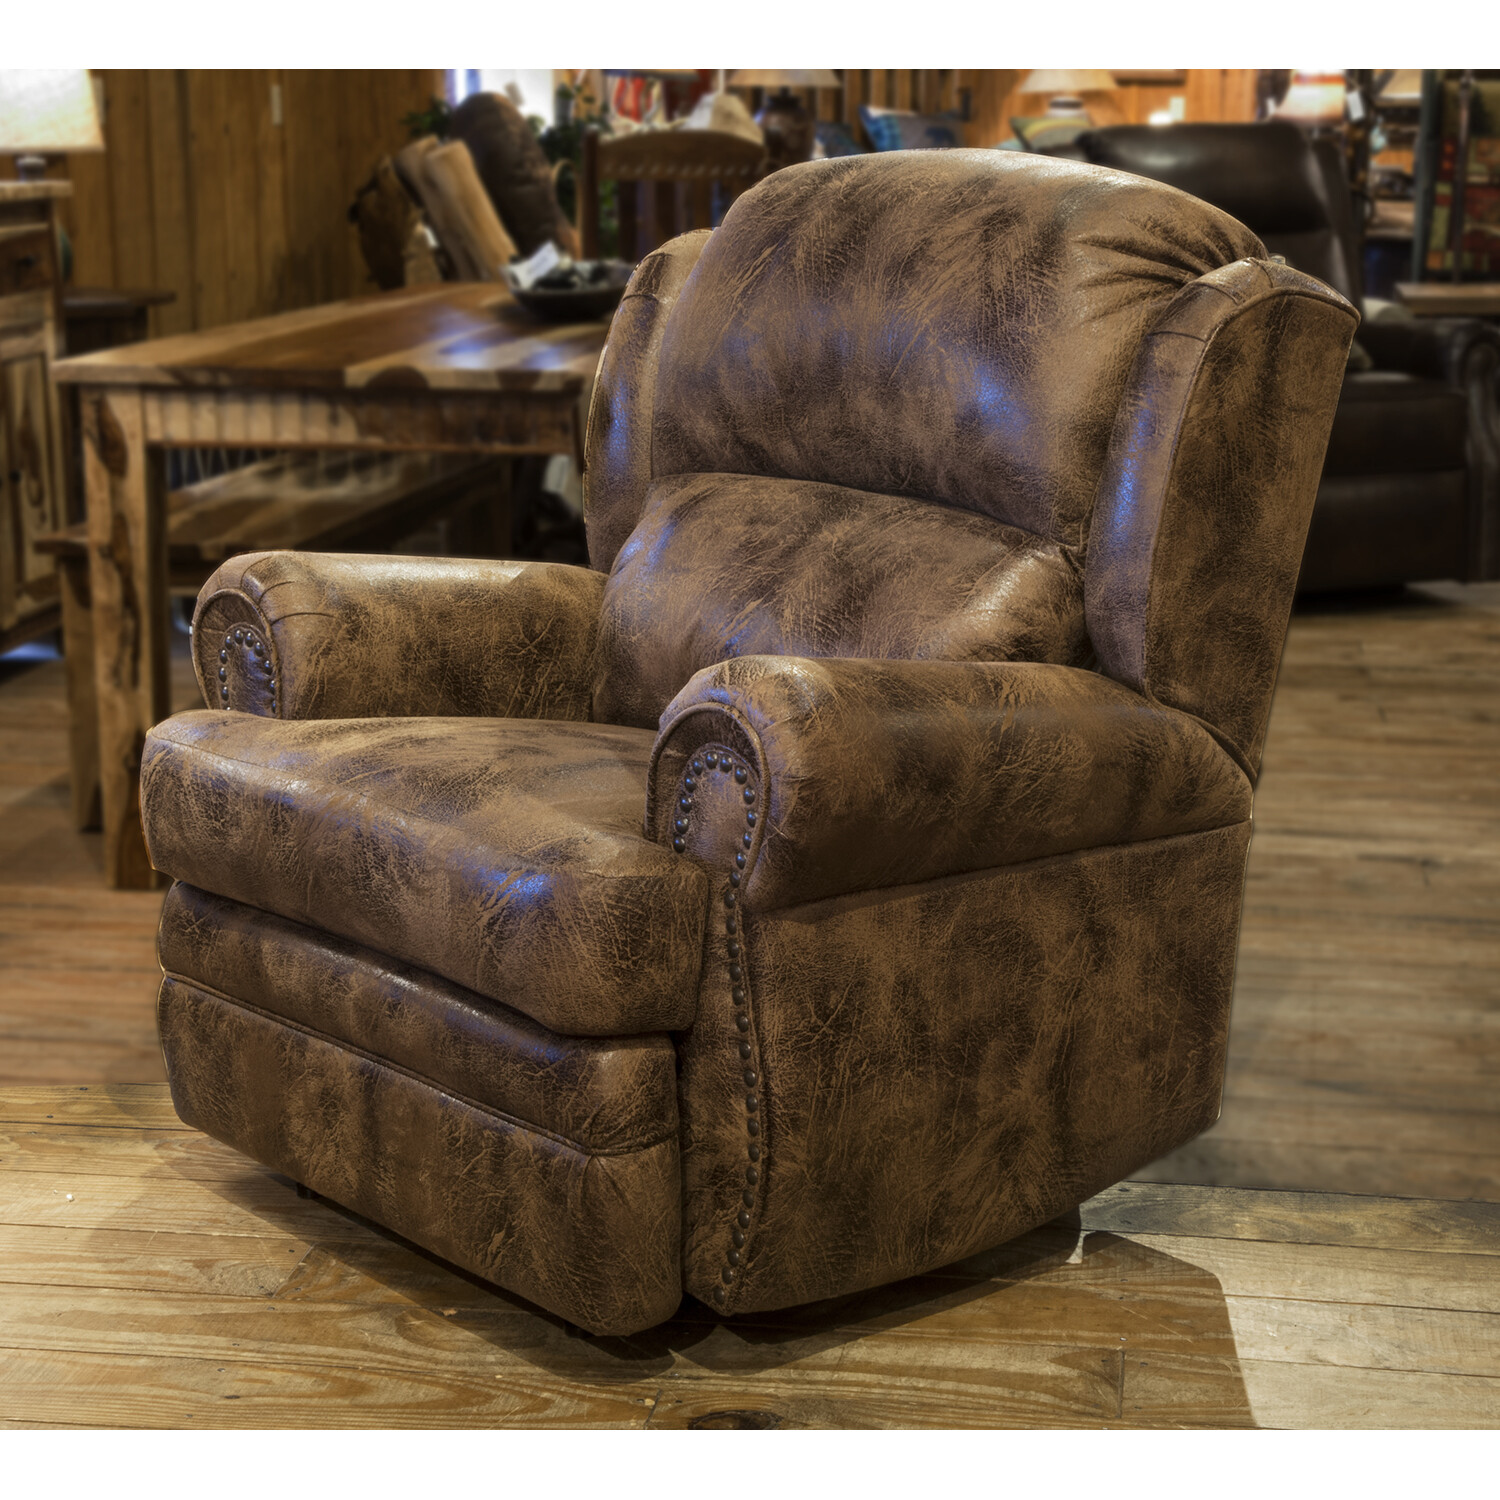 Wall Recliner w/Extended Footrest